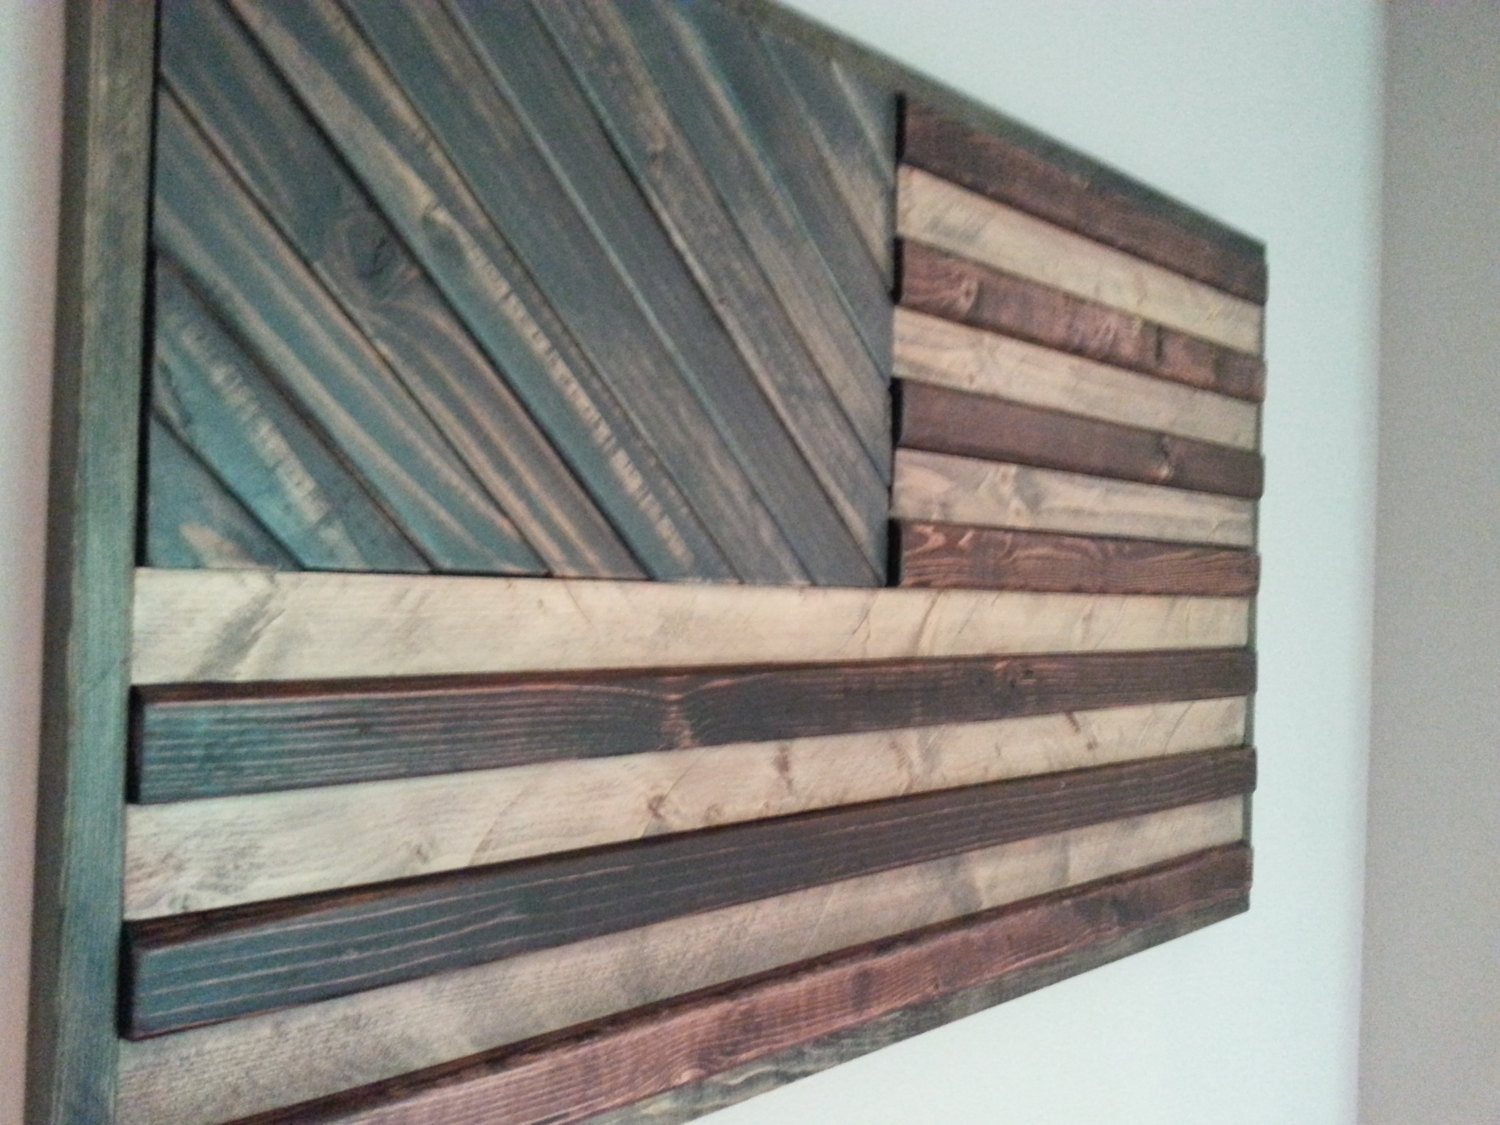 Diy Wood Wall Art Ideas Projects Pinterest Plank Arts And Crafts Regarding Most Current Wood Wall Art Diy (View 14 of 15)